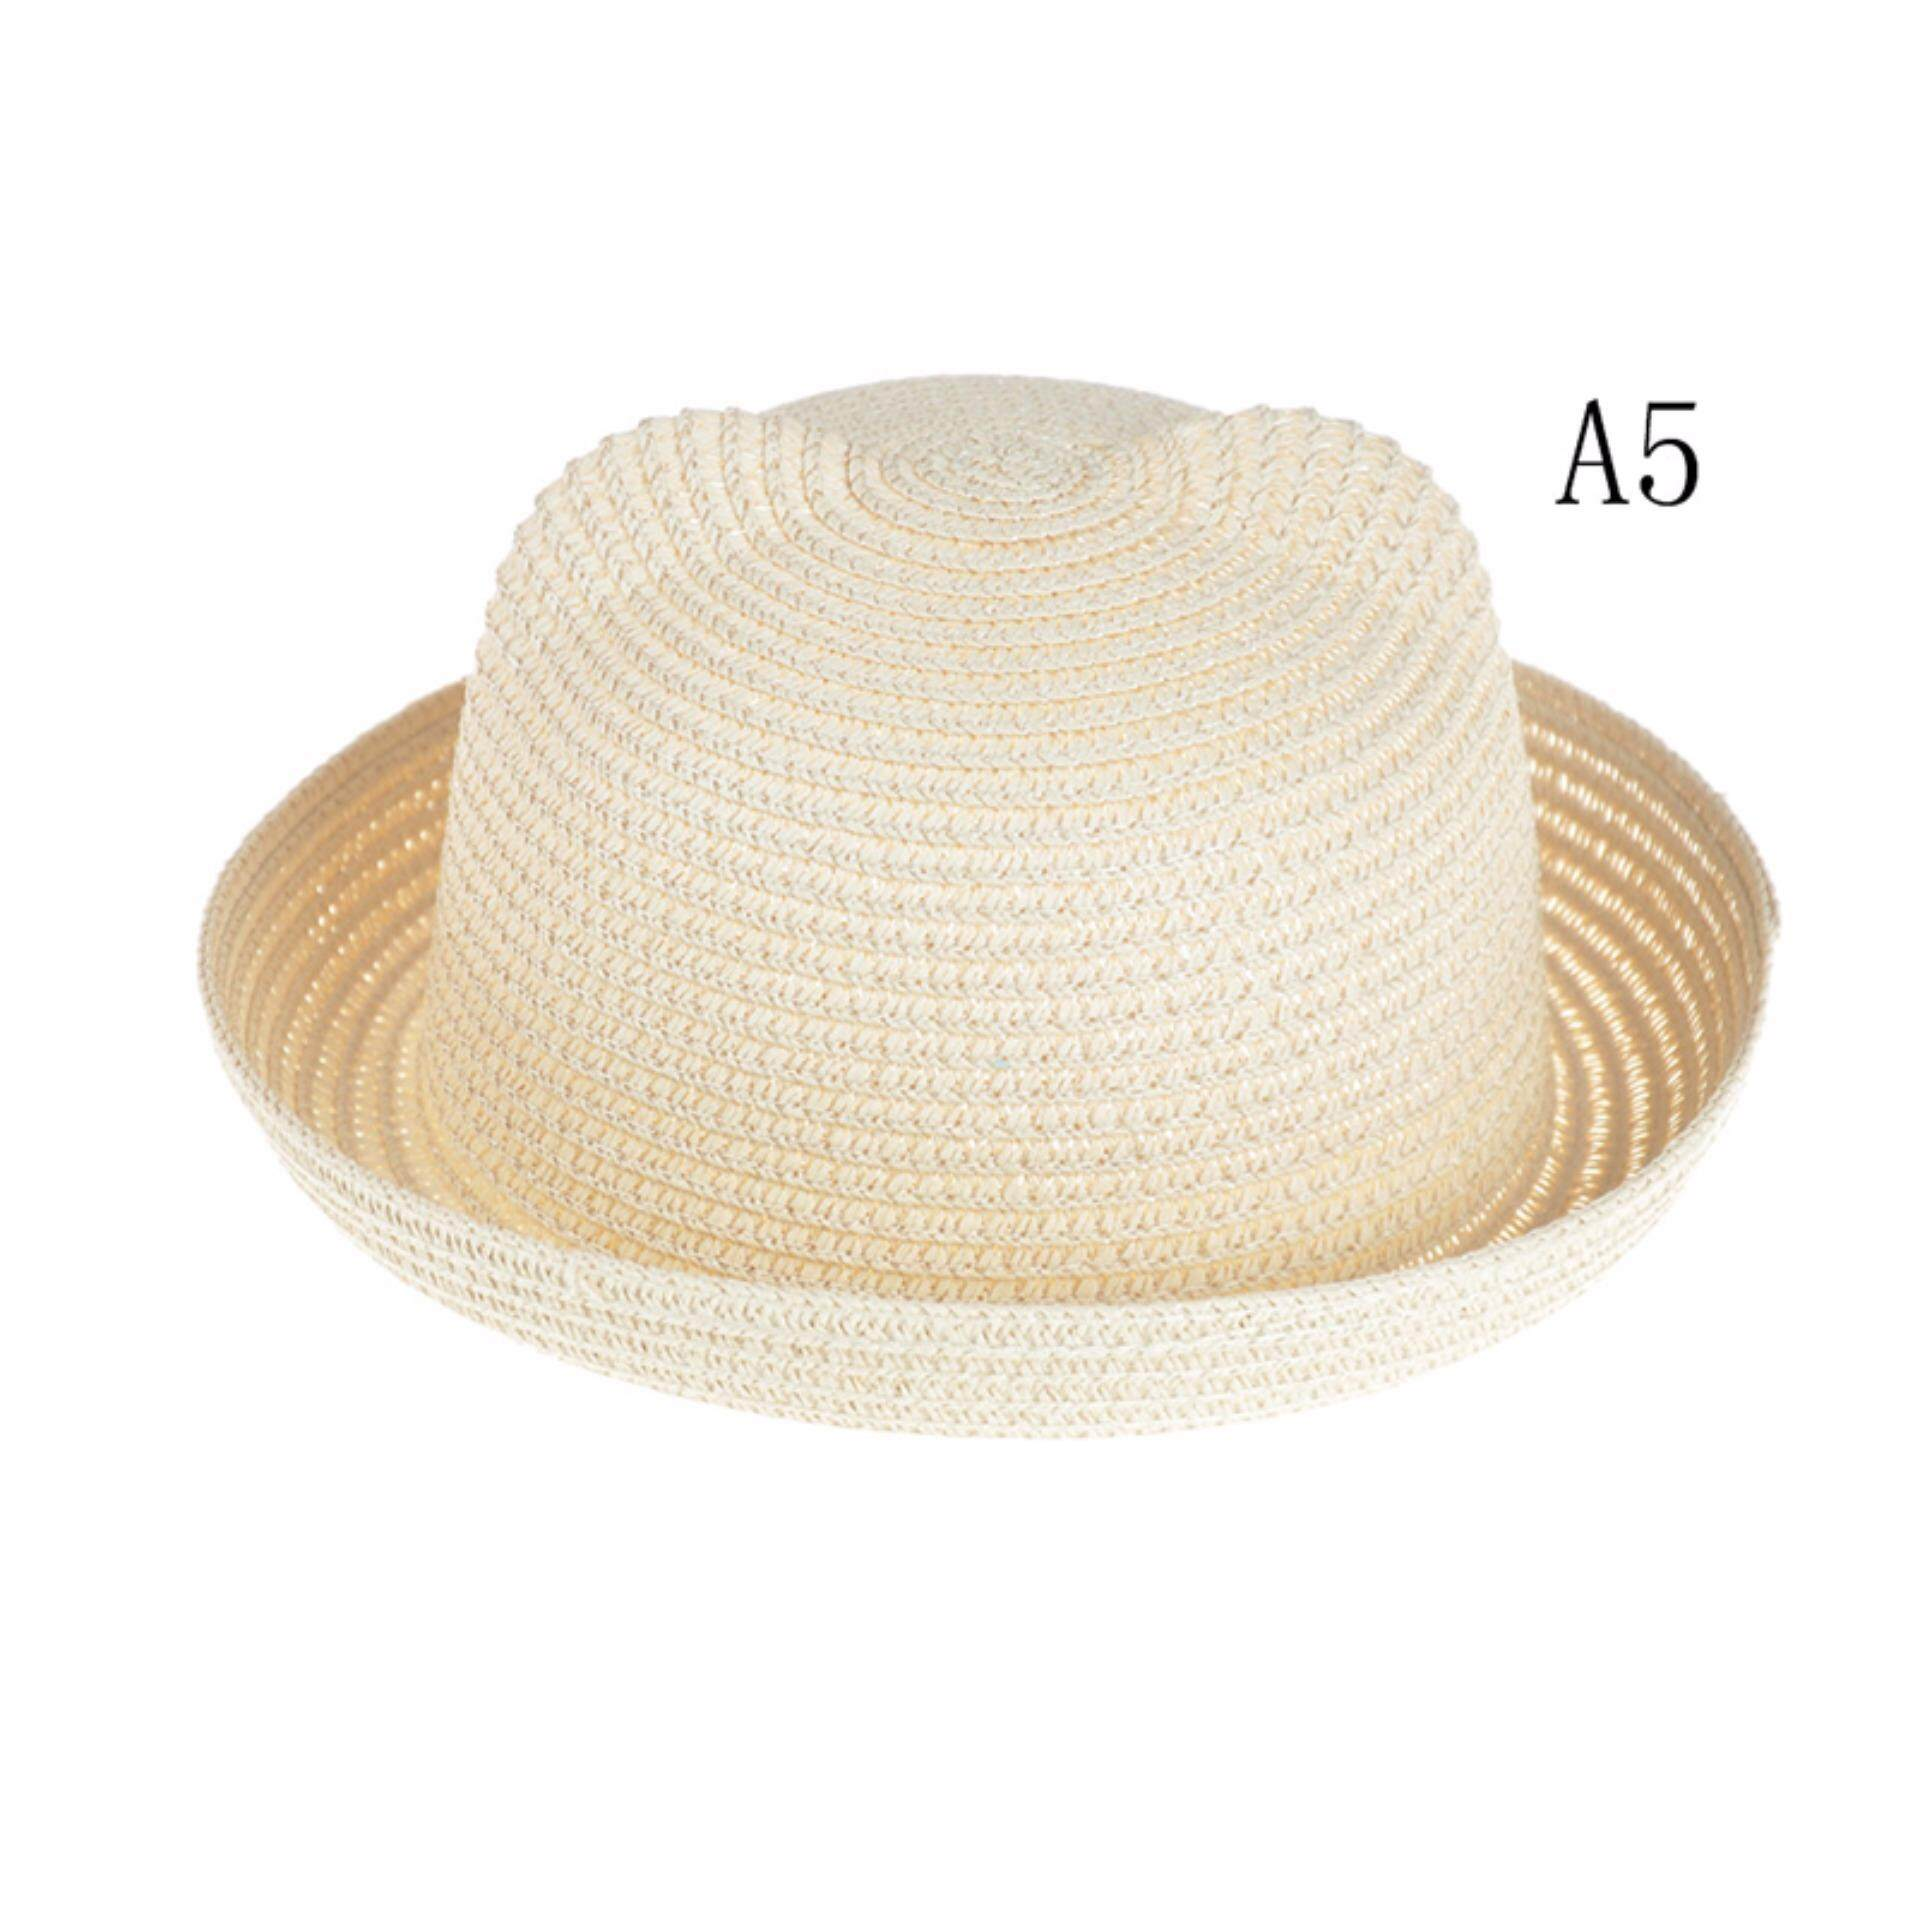 1994cbb6ce3 Baby Hats Fashion Ears Straw Cute Hats For Girls Bucket Hat Boys Cap  Children Sun Summer